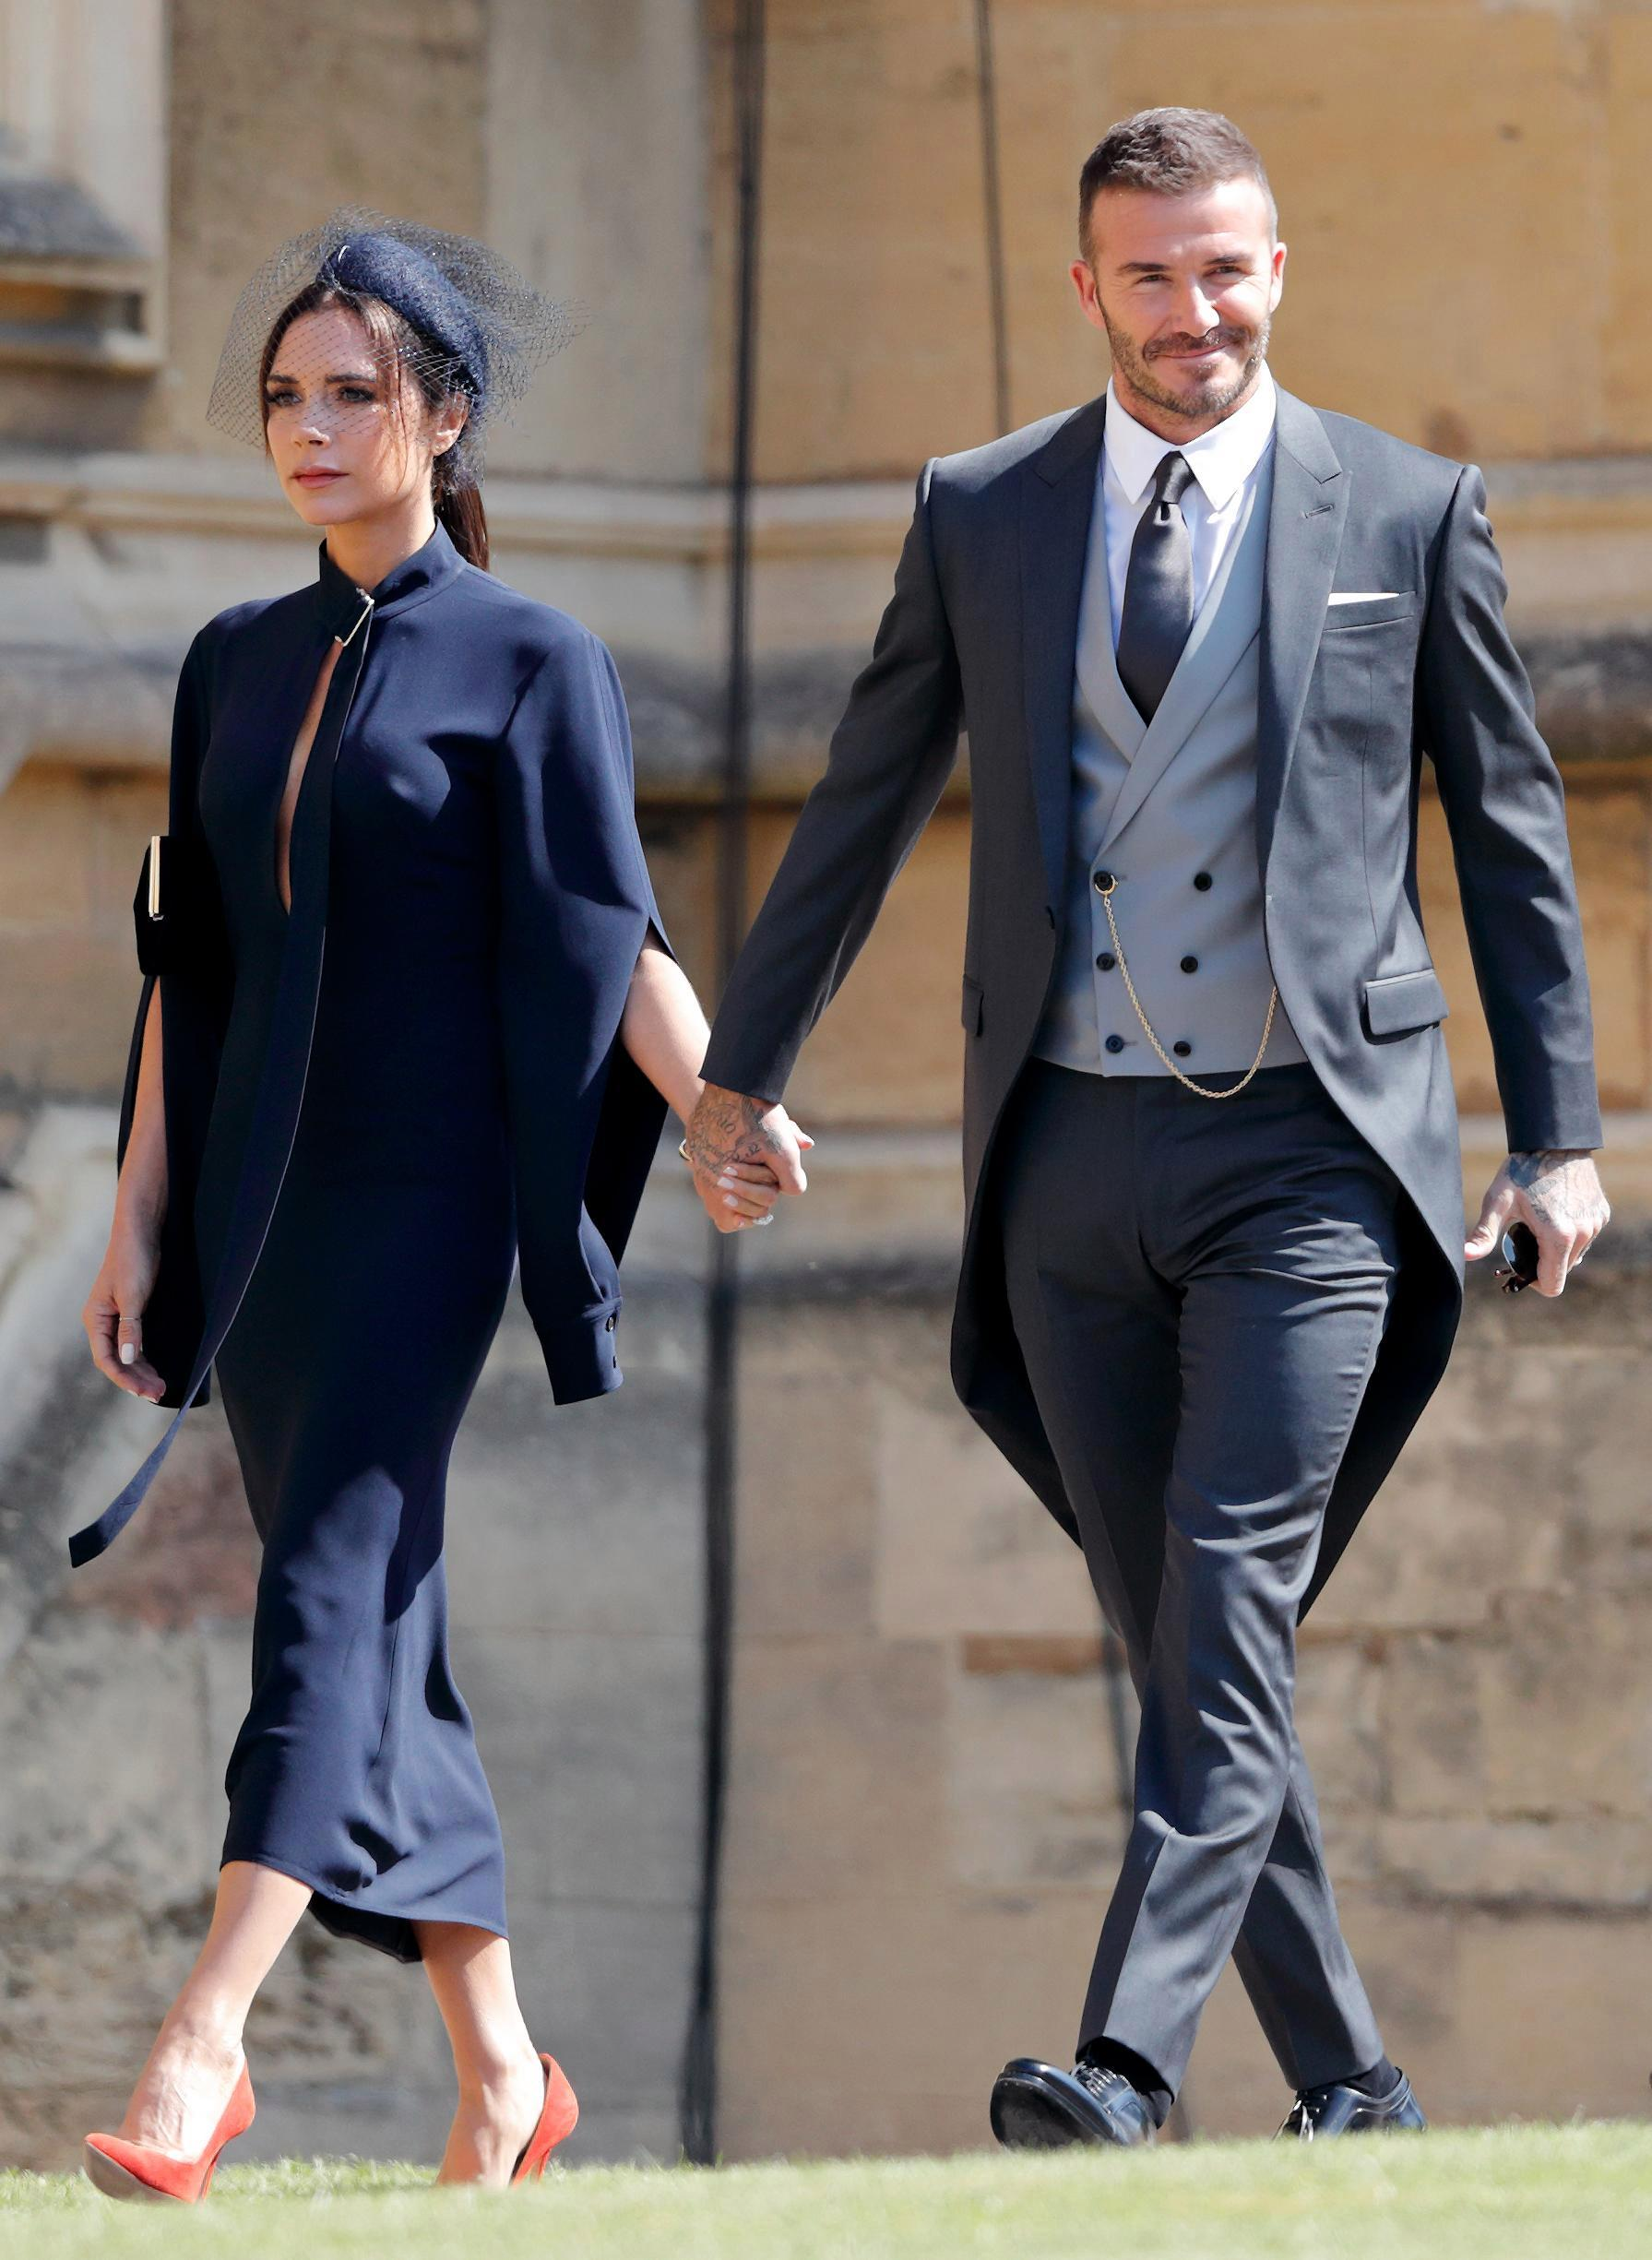 The power couple were among the guests to attend the wedding between Prince Harry and Meghan Markle